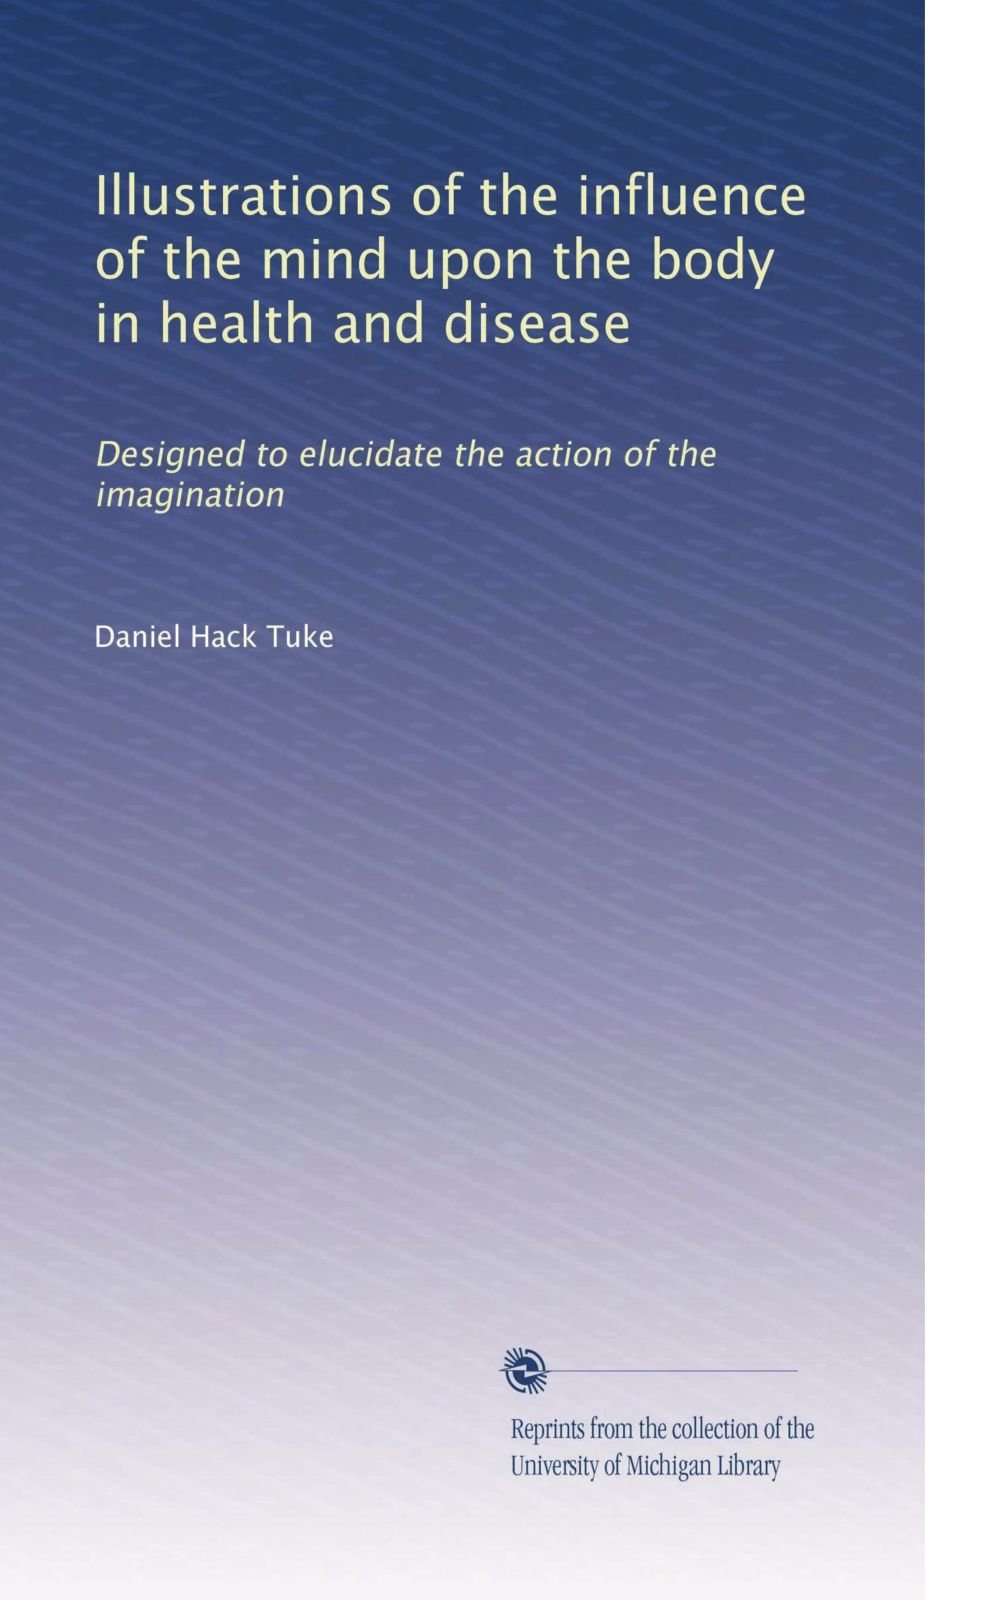 Download Illustrations of the influence of the mind upon the body in health and disease: Designed to elucidate the action of the imagination PDF